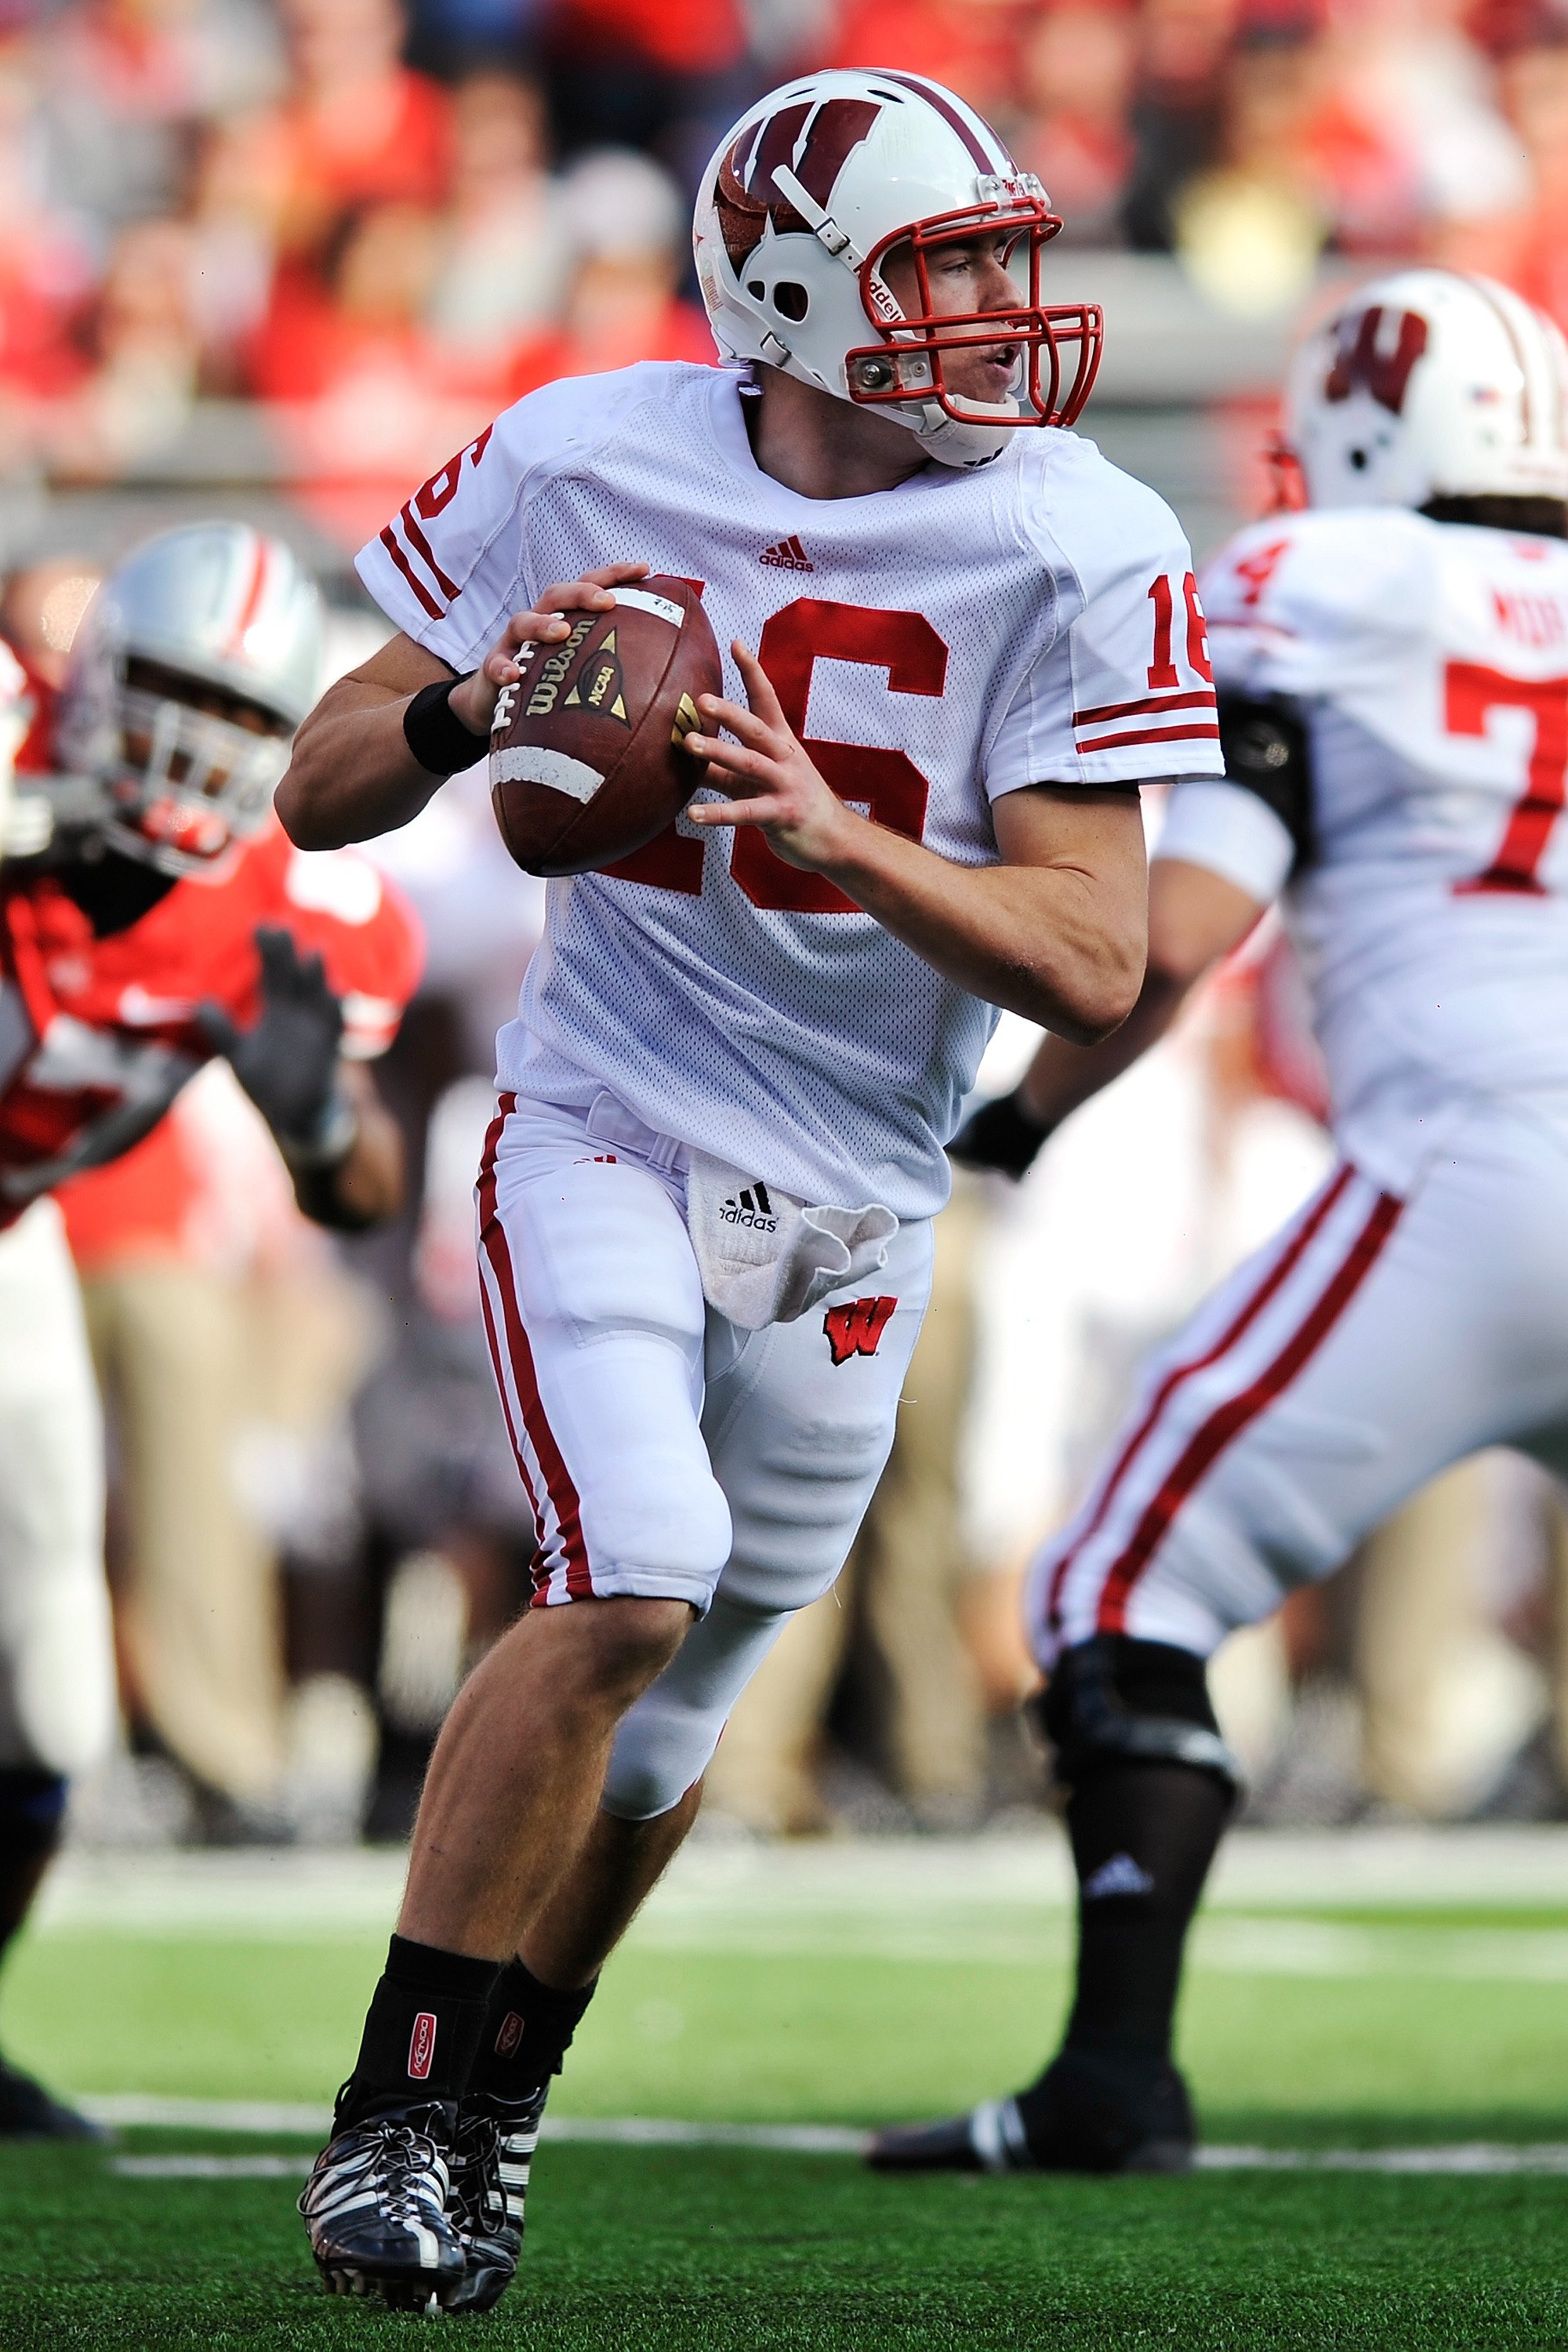 COLUMBUS, OH - OCTOBER 10:  Quarterback Scott Tolzien #16 of the Wisconsin Badgers runs with the ball against the Ohio State Buckeyes at Ohio Stadium on October 10, 2009 in Columbus, Ohio.  (Photo by Jamie Sabau/Getty Images)